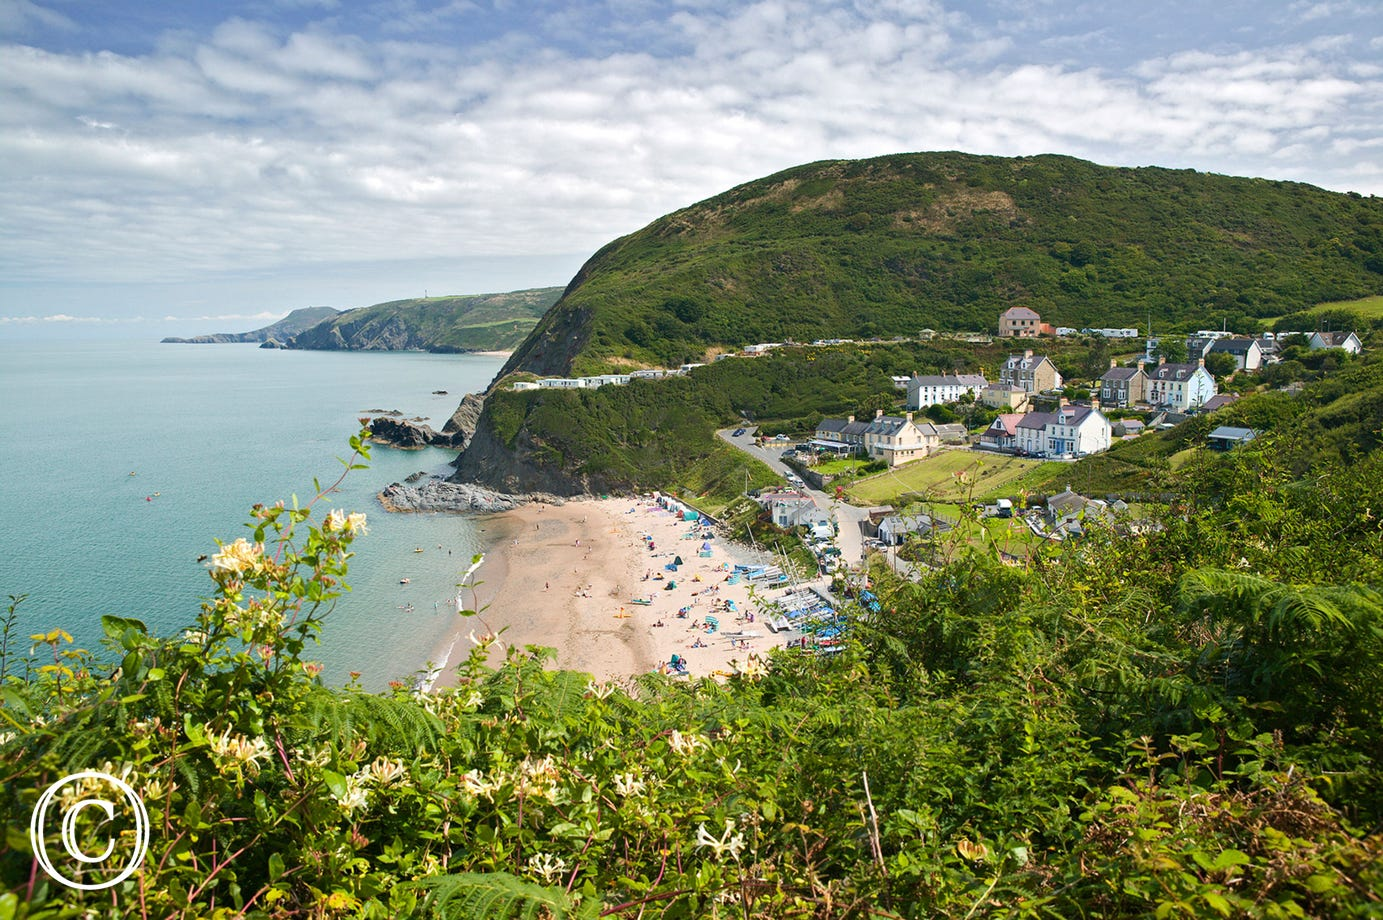 The beach at Tresaith